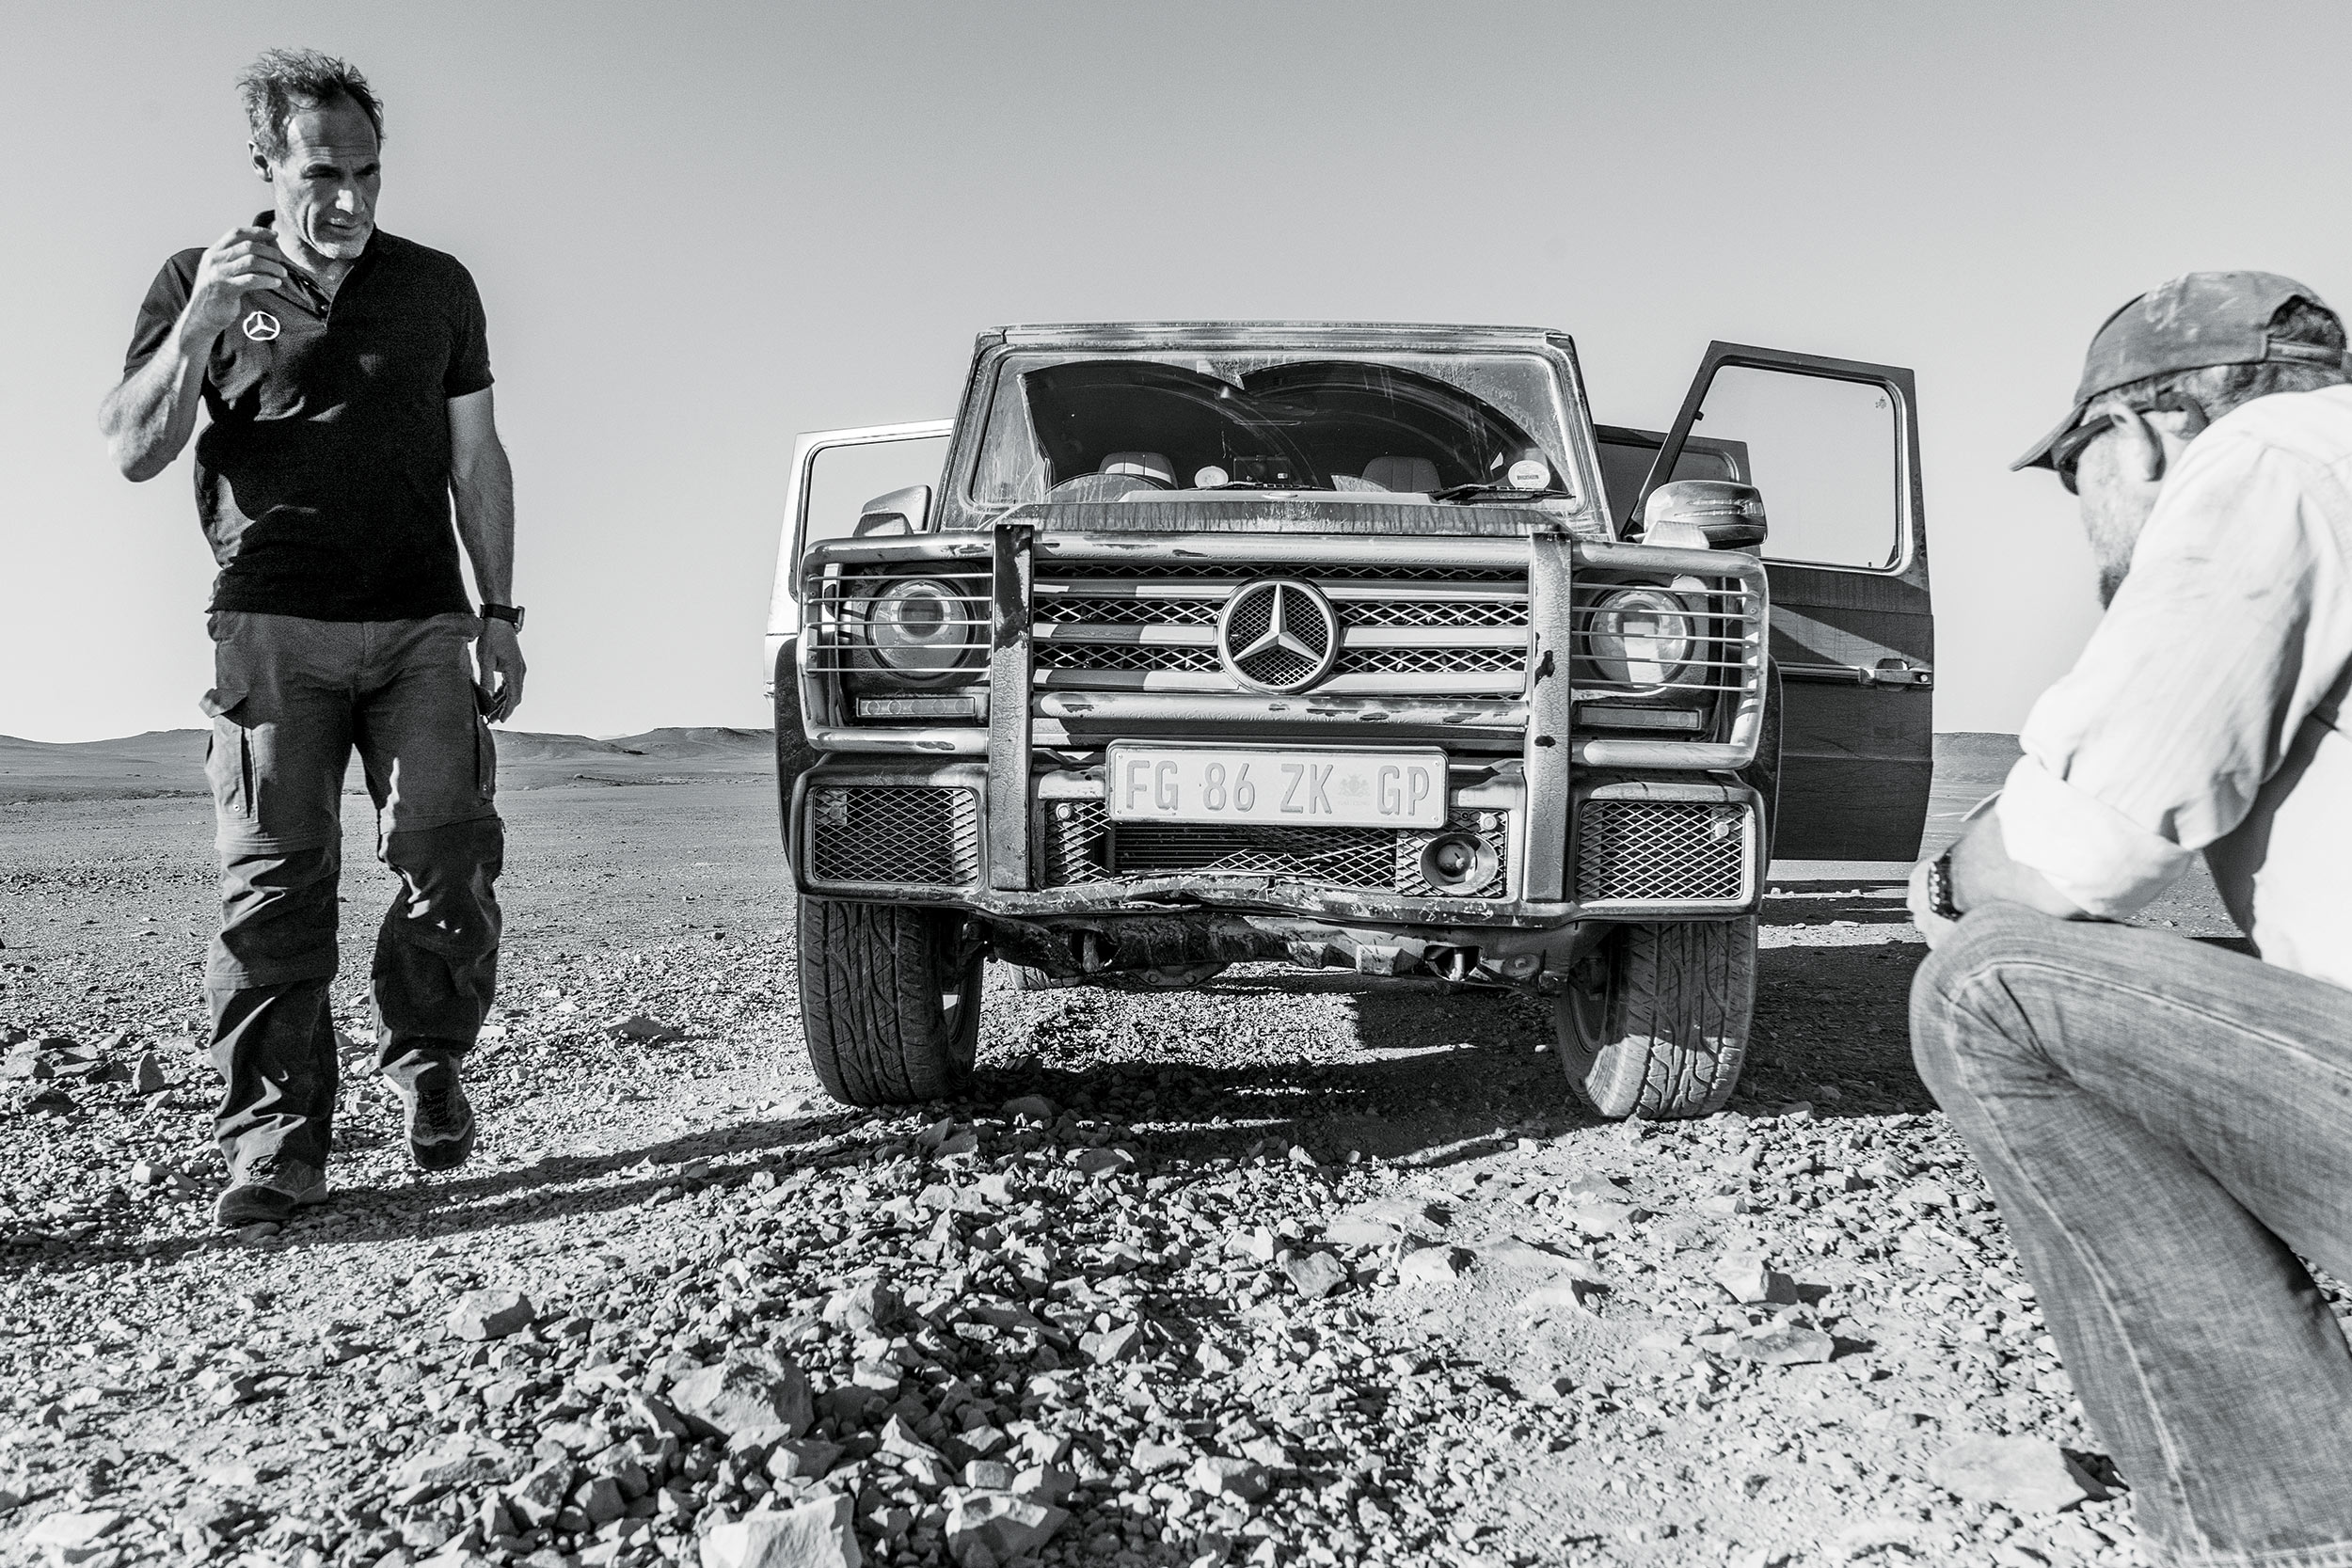 The route through the Namib desert is tough on the vehicles. One of the G-wagens hits a sudden dip in the track, denting the front bumper protecting the radiator. By this point we've already had more tire changes than we have spare tires and need to drive cautiously. Photo: Apoorva Prasad